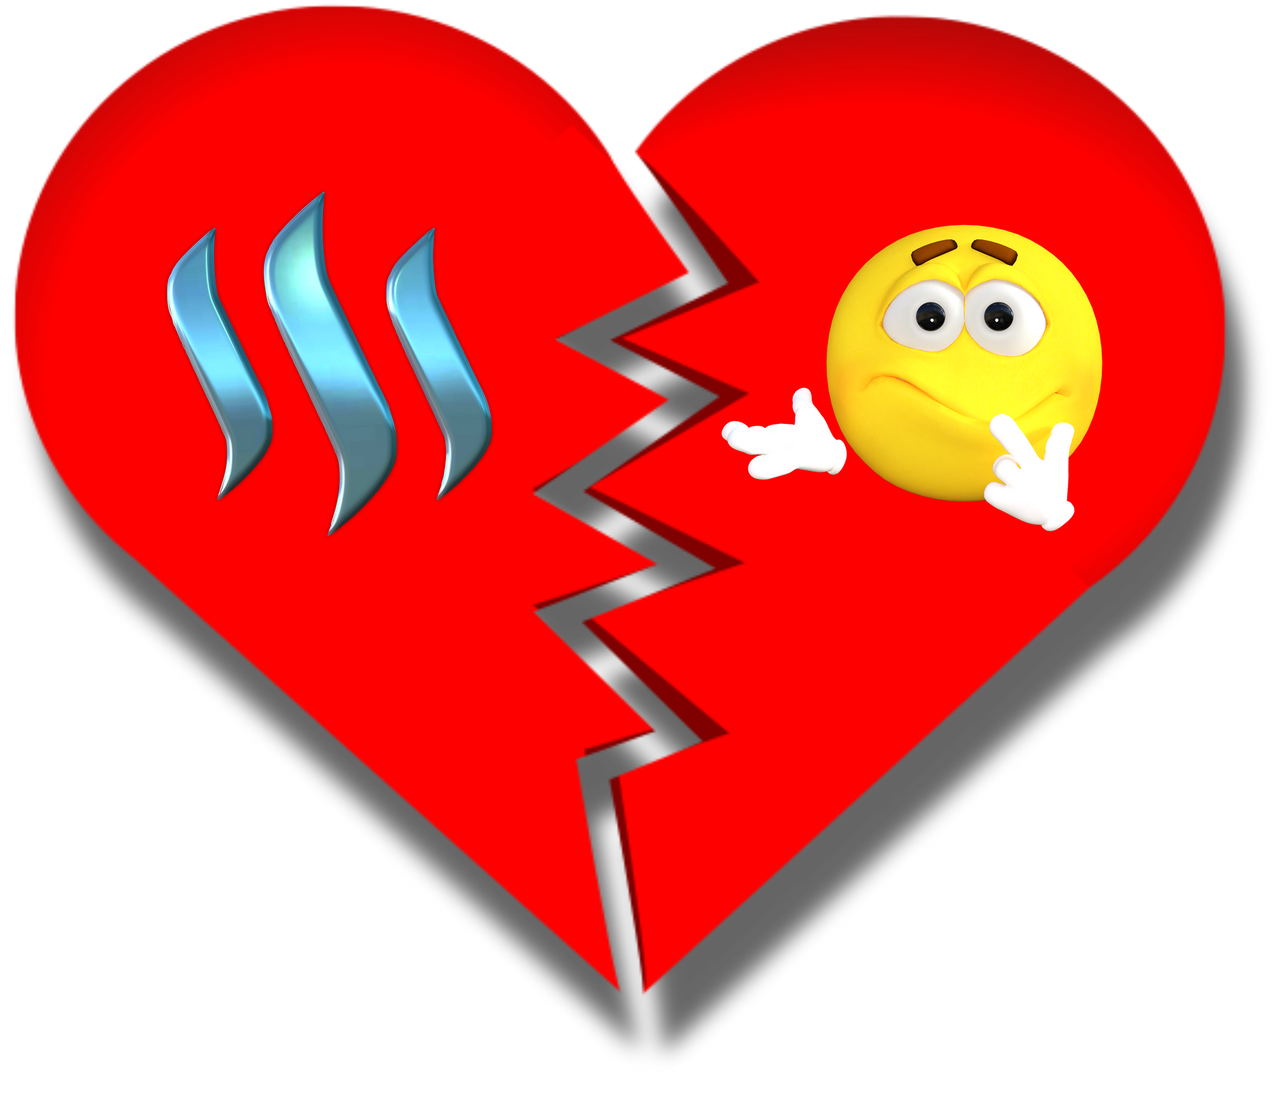 heart-1952347_1920 1A.png